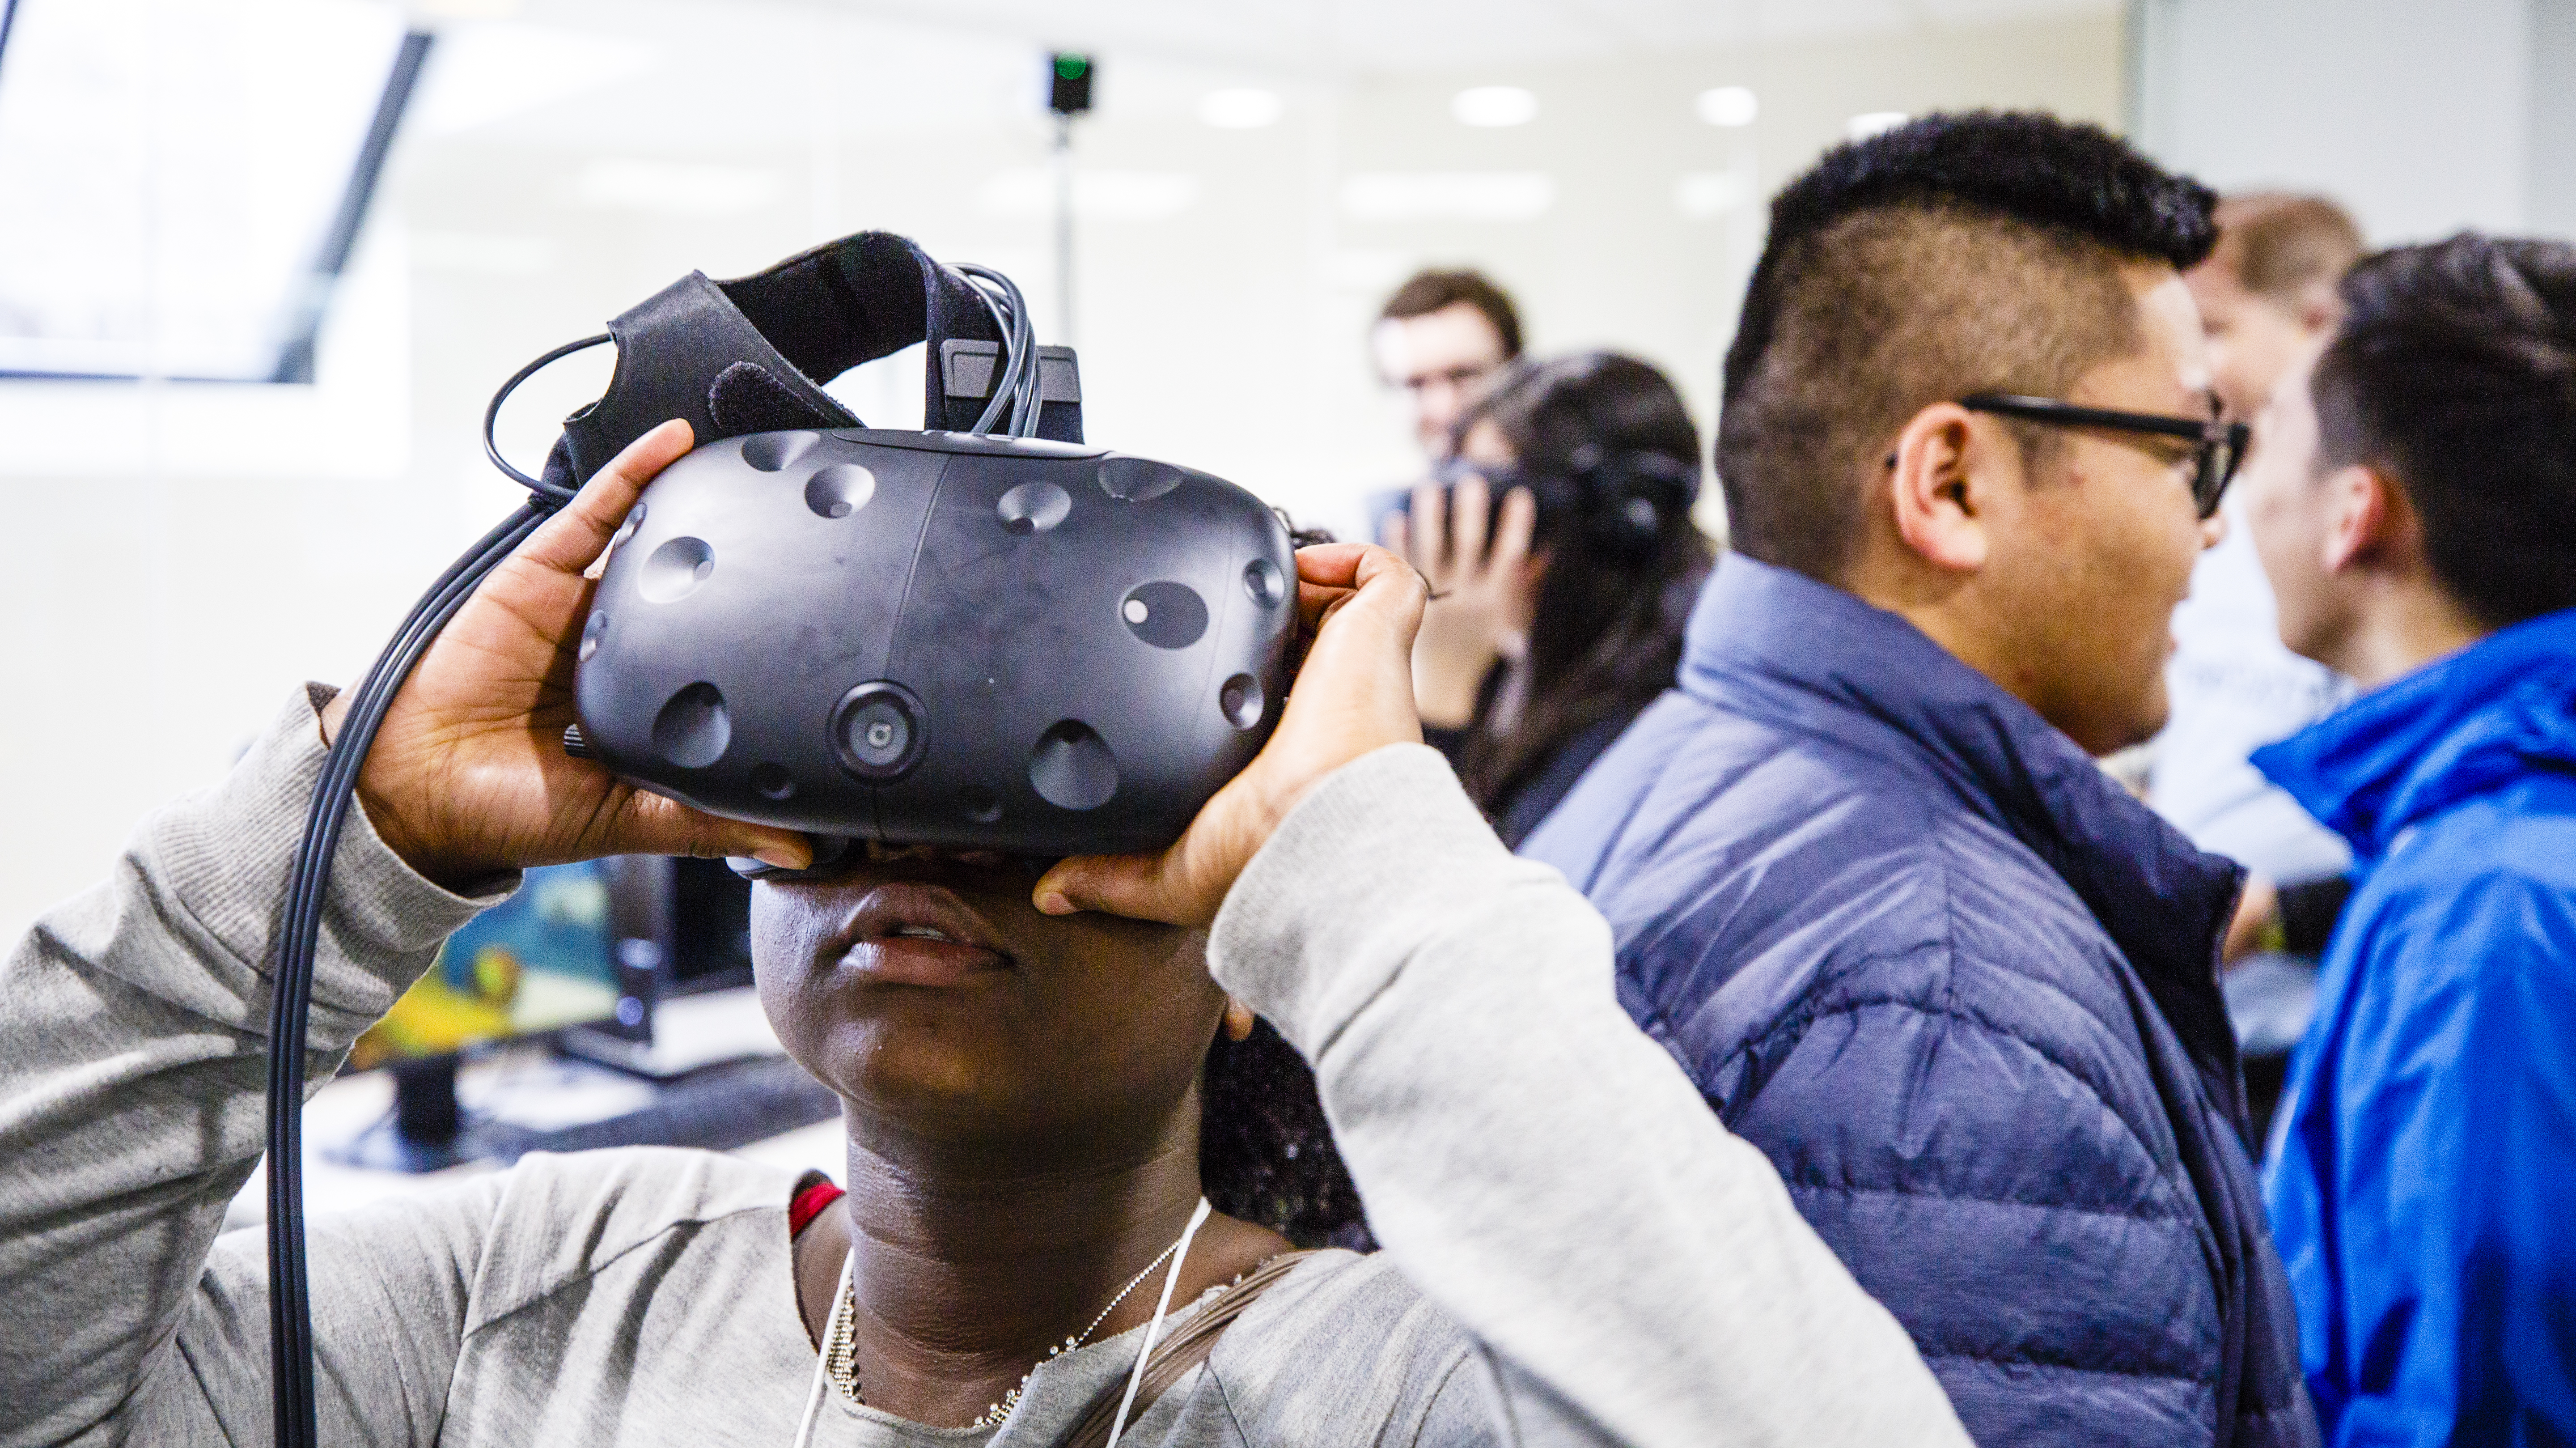 A student uses virtual reality at the Youth Digital Media Summit in February.